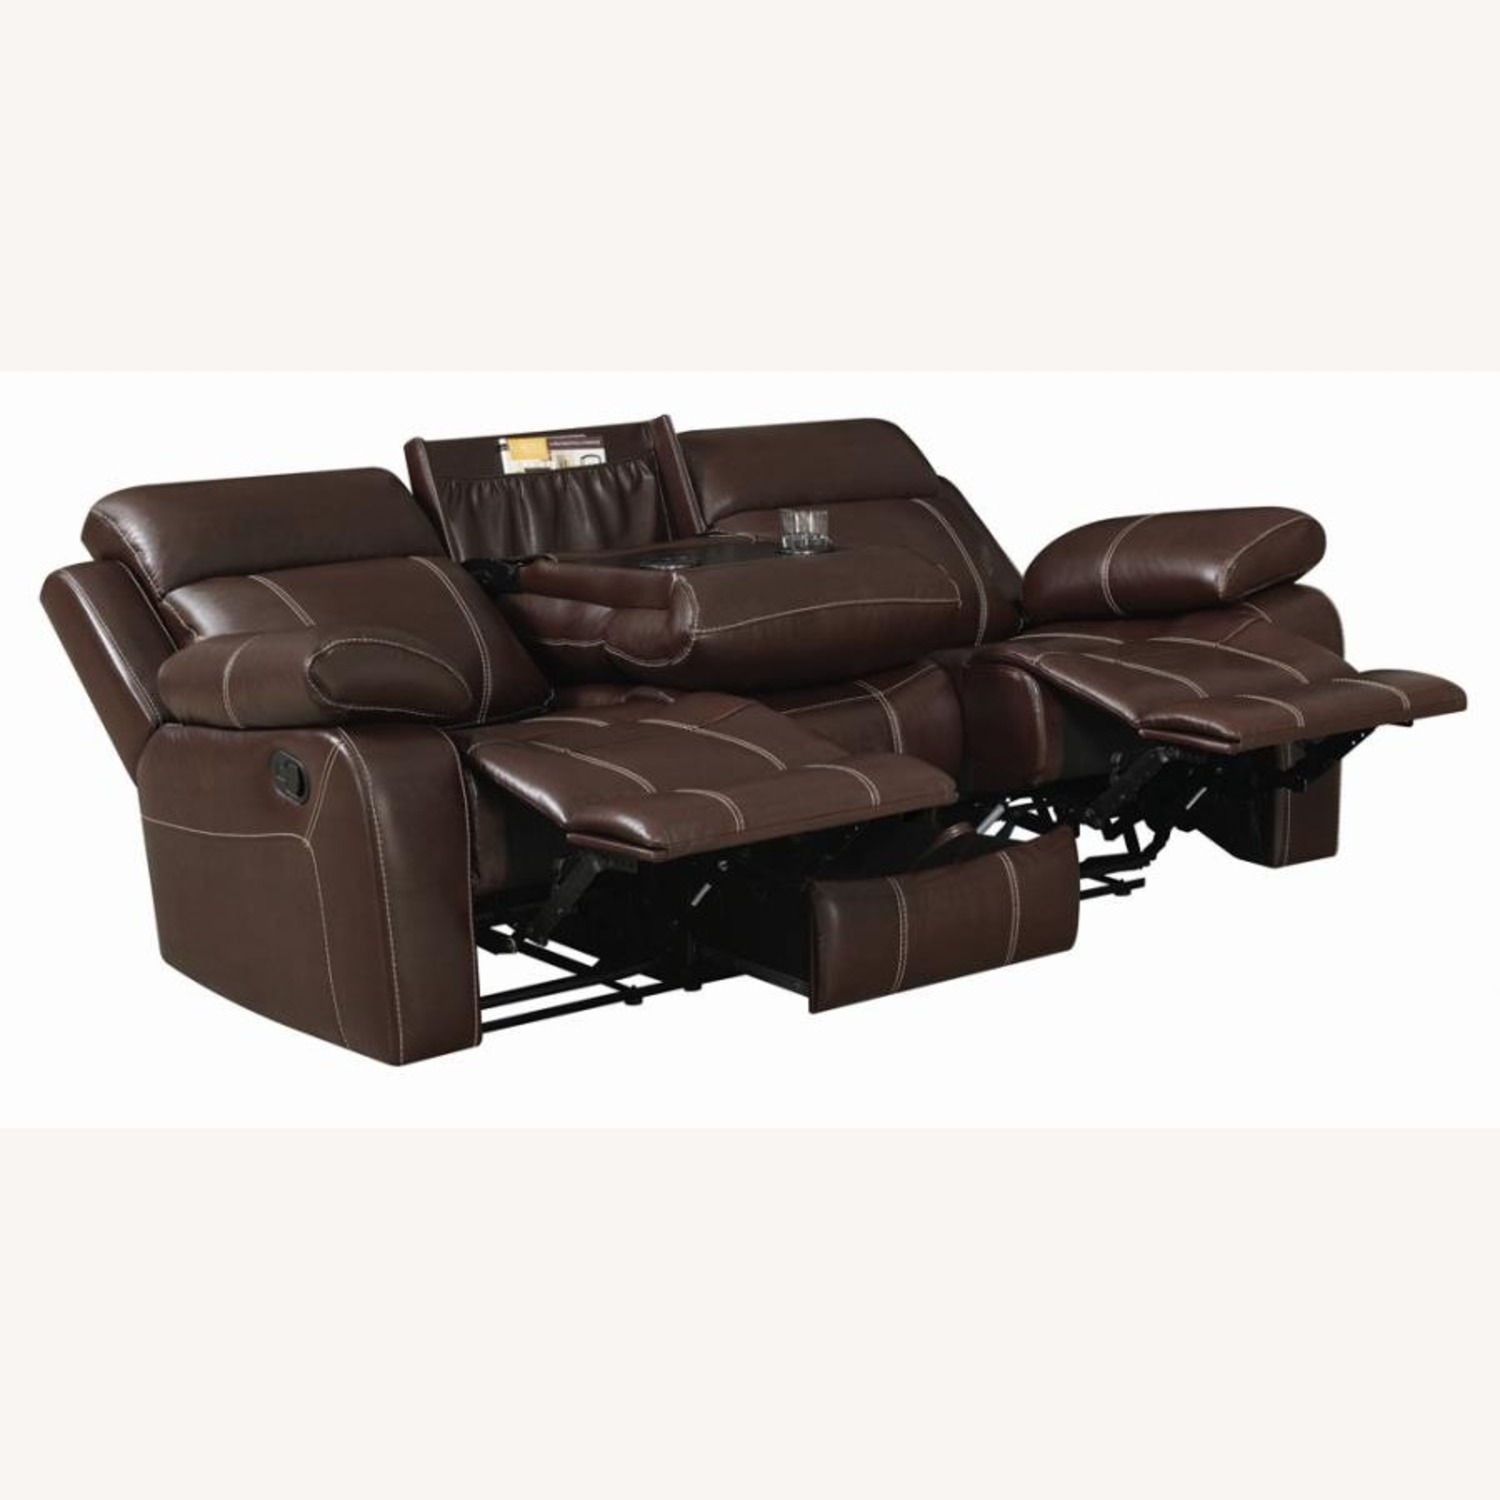 Motion Sofa In Chestnut Leather W/ Storage Drawer - image-1